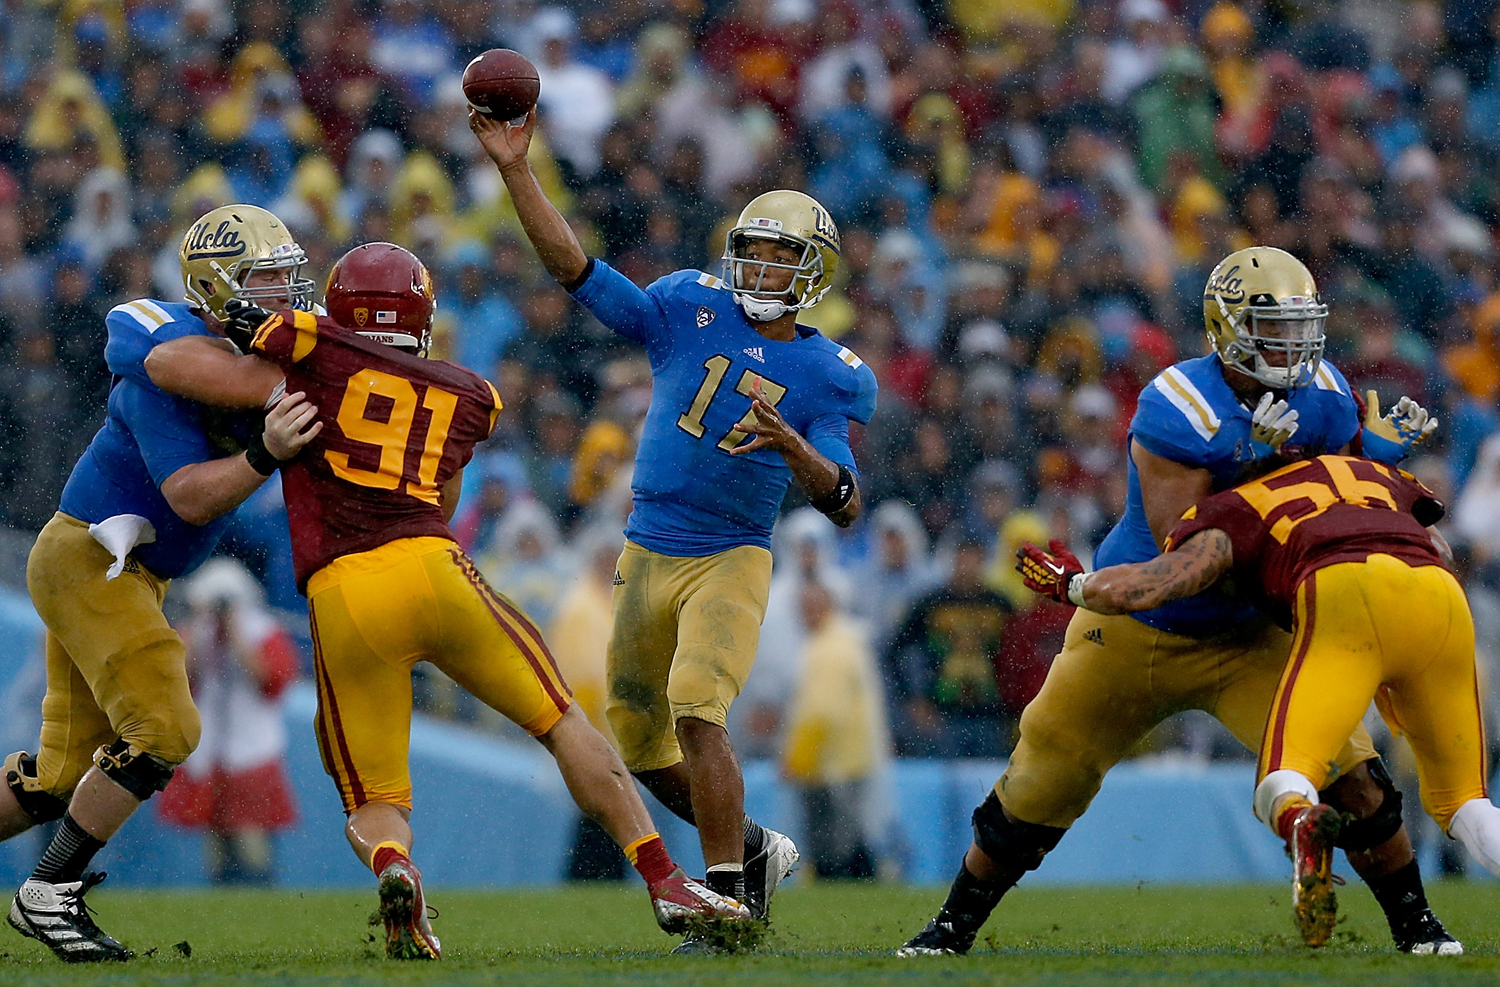 UCLA quarterback Brett Hundley during a NCAA football game against USC at the Rose Bowl in Pasadena, Calif. The Bruins defeated the Trojans, 38-28. (Ben Liebenberg/NFL)